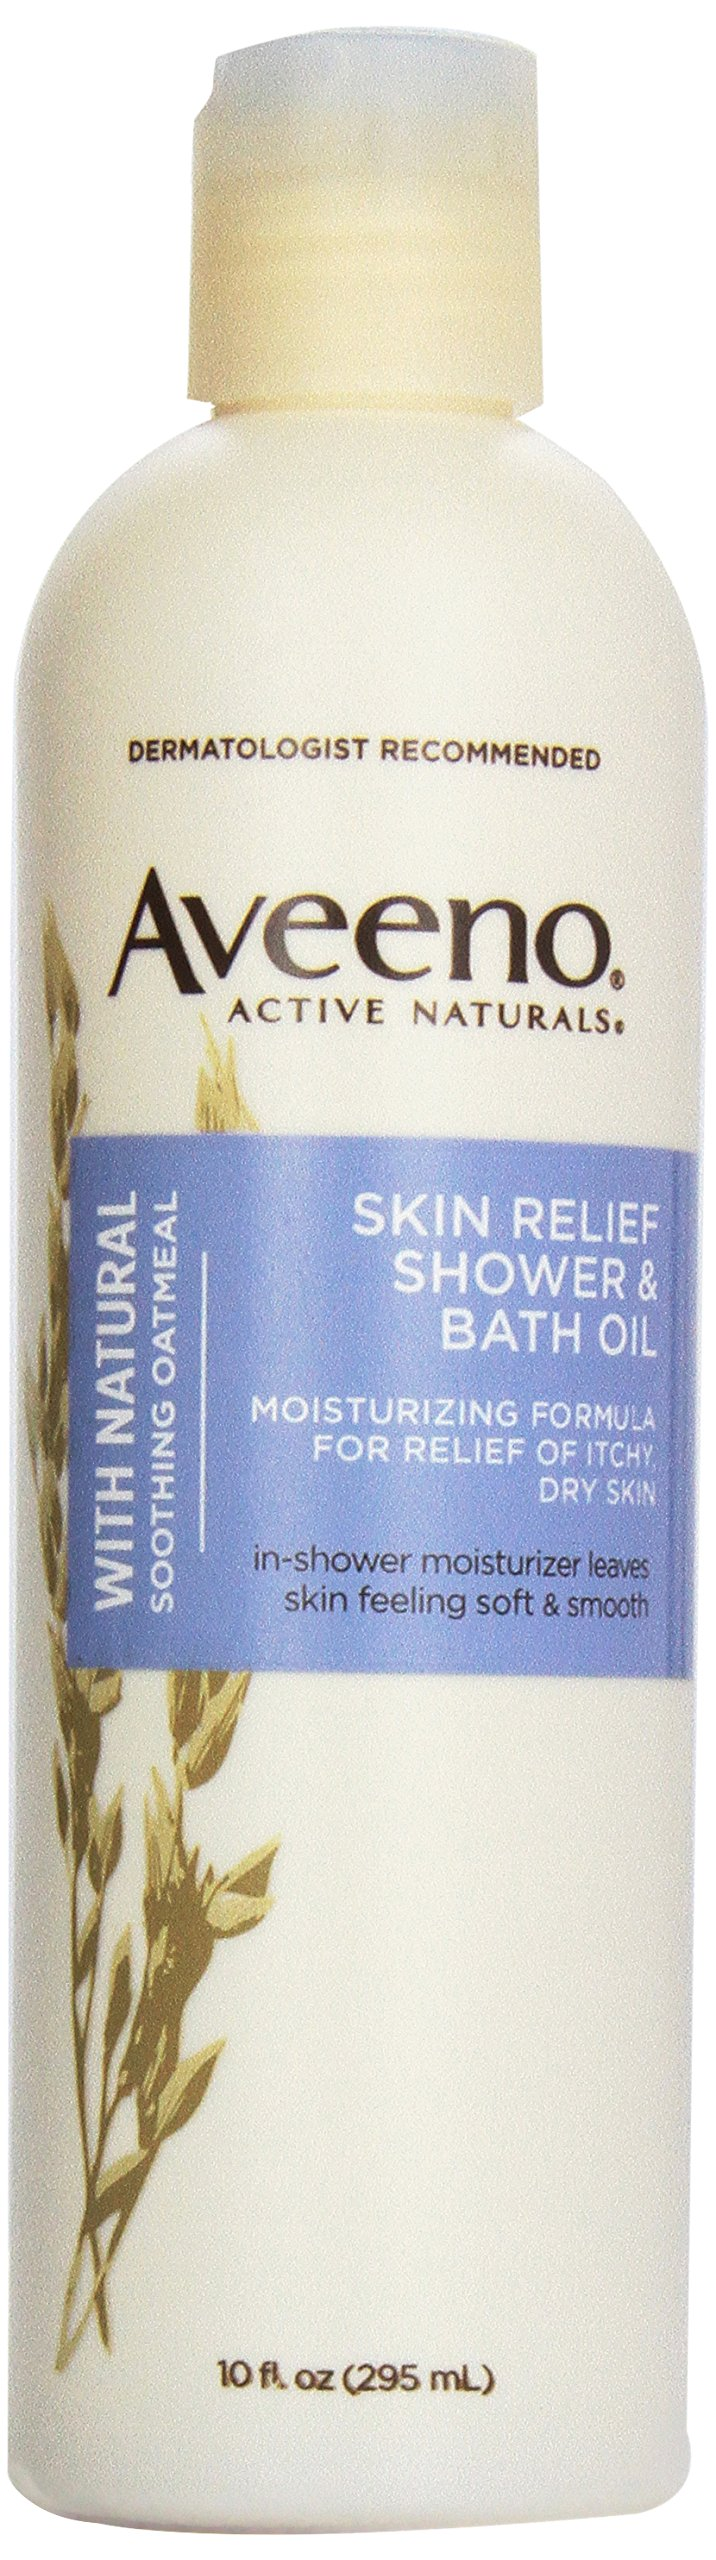 Aveeno Active Naturals Skin Relief Shower & Bath Oil with Natural Soothing Oatmeal for Relief of Itchy, Dry Skin, 10-Ounce Bottles (Pack of 3)